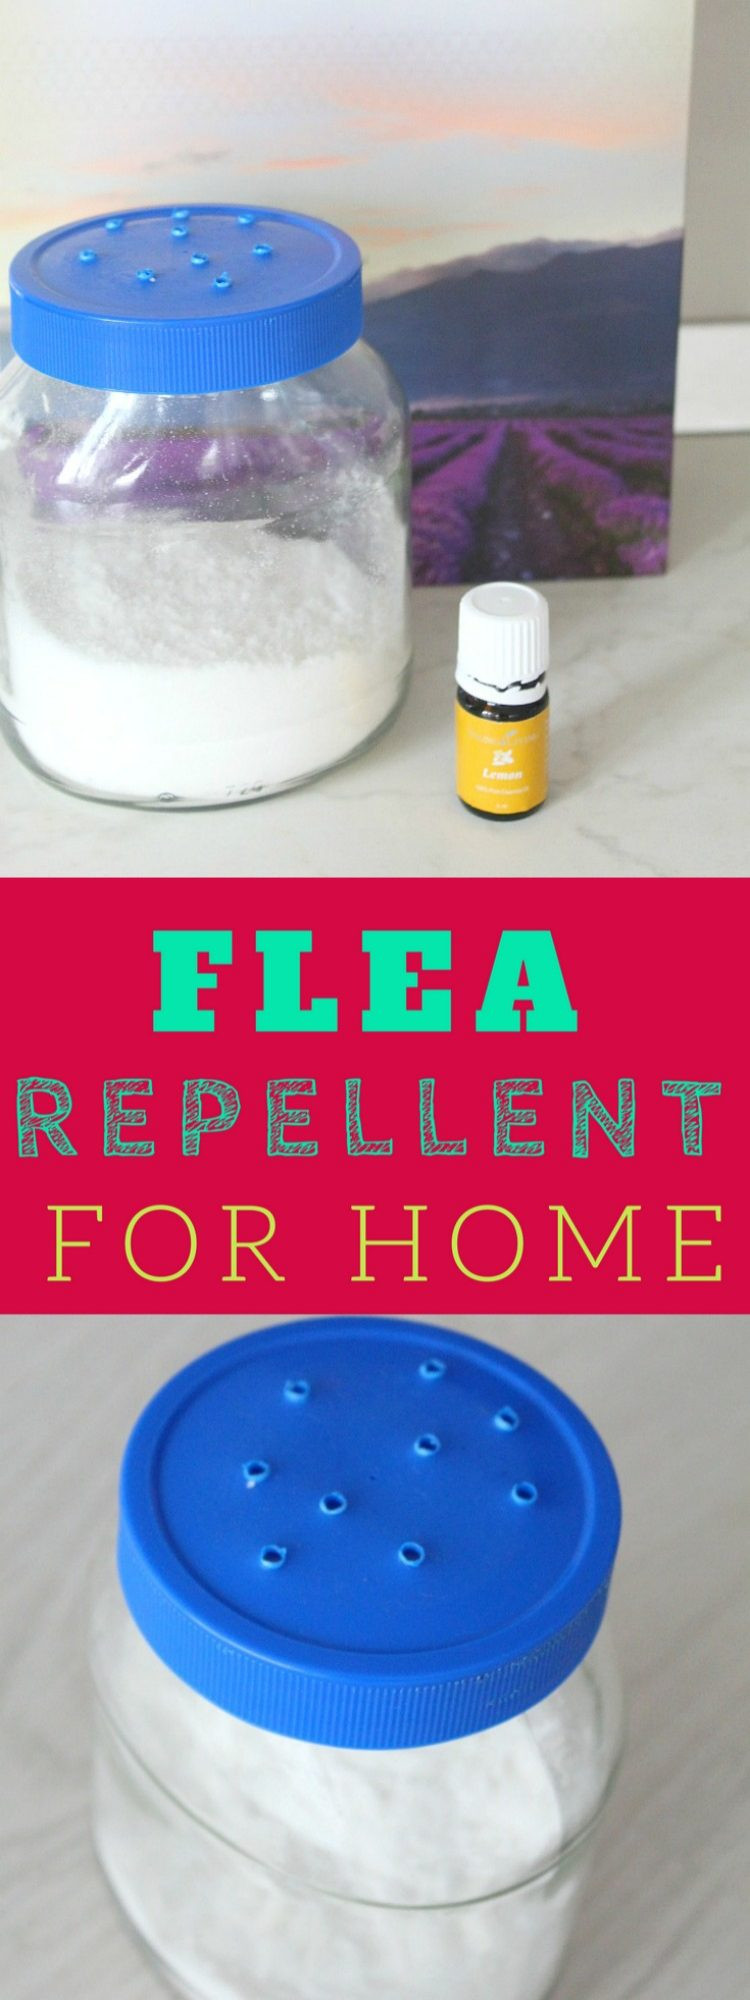 DIY Flea Spray For Home  The Ultimate Homemade Flea Repellent For Your Home